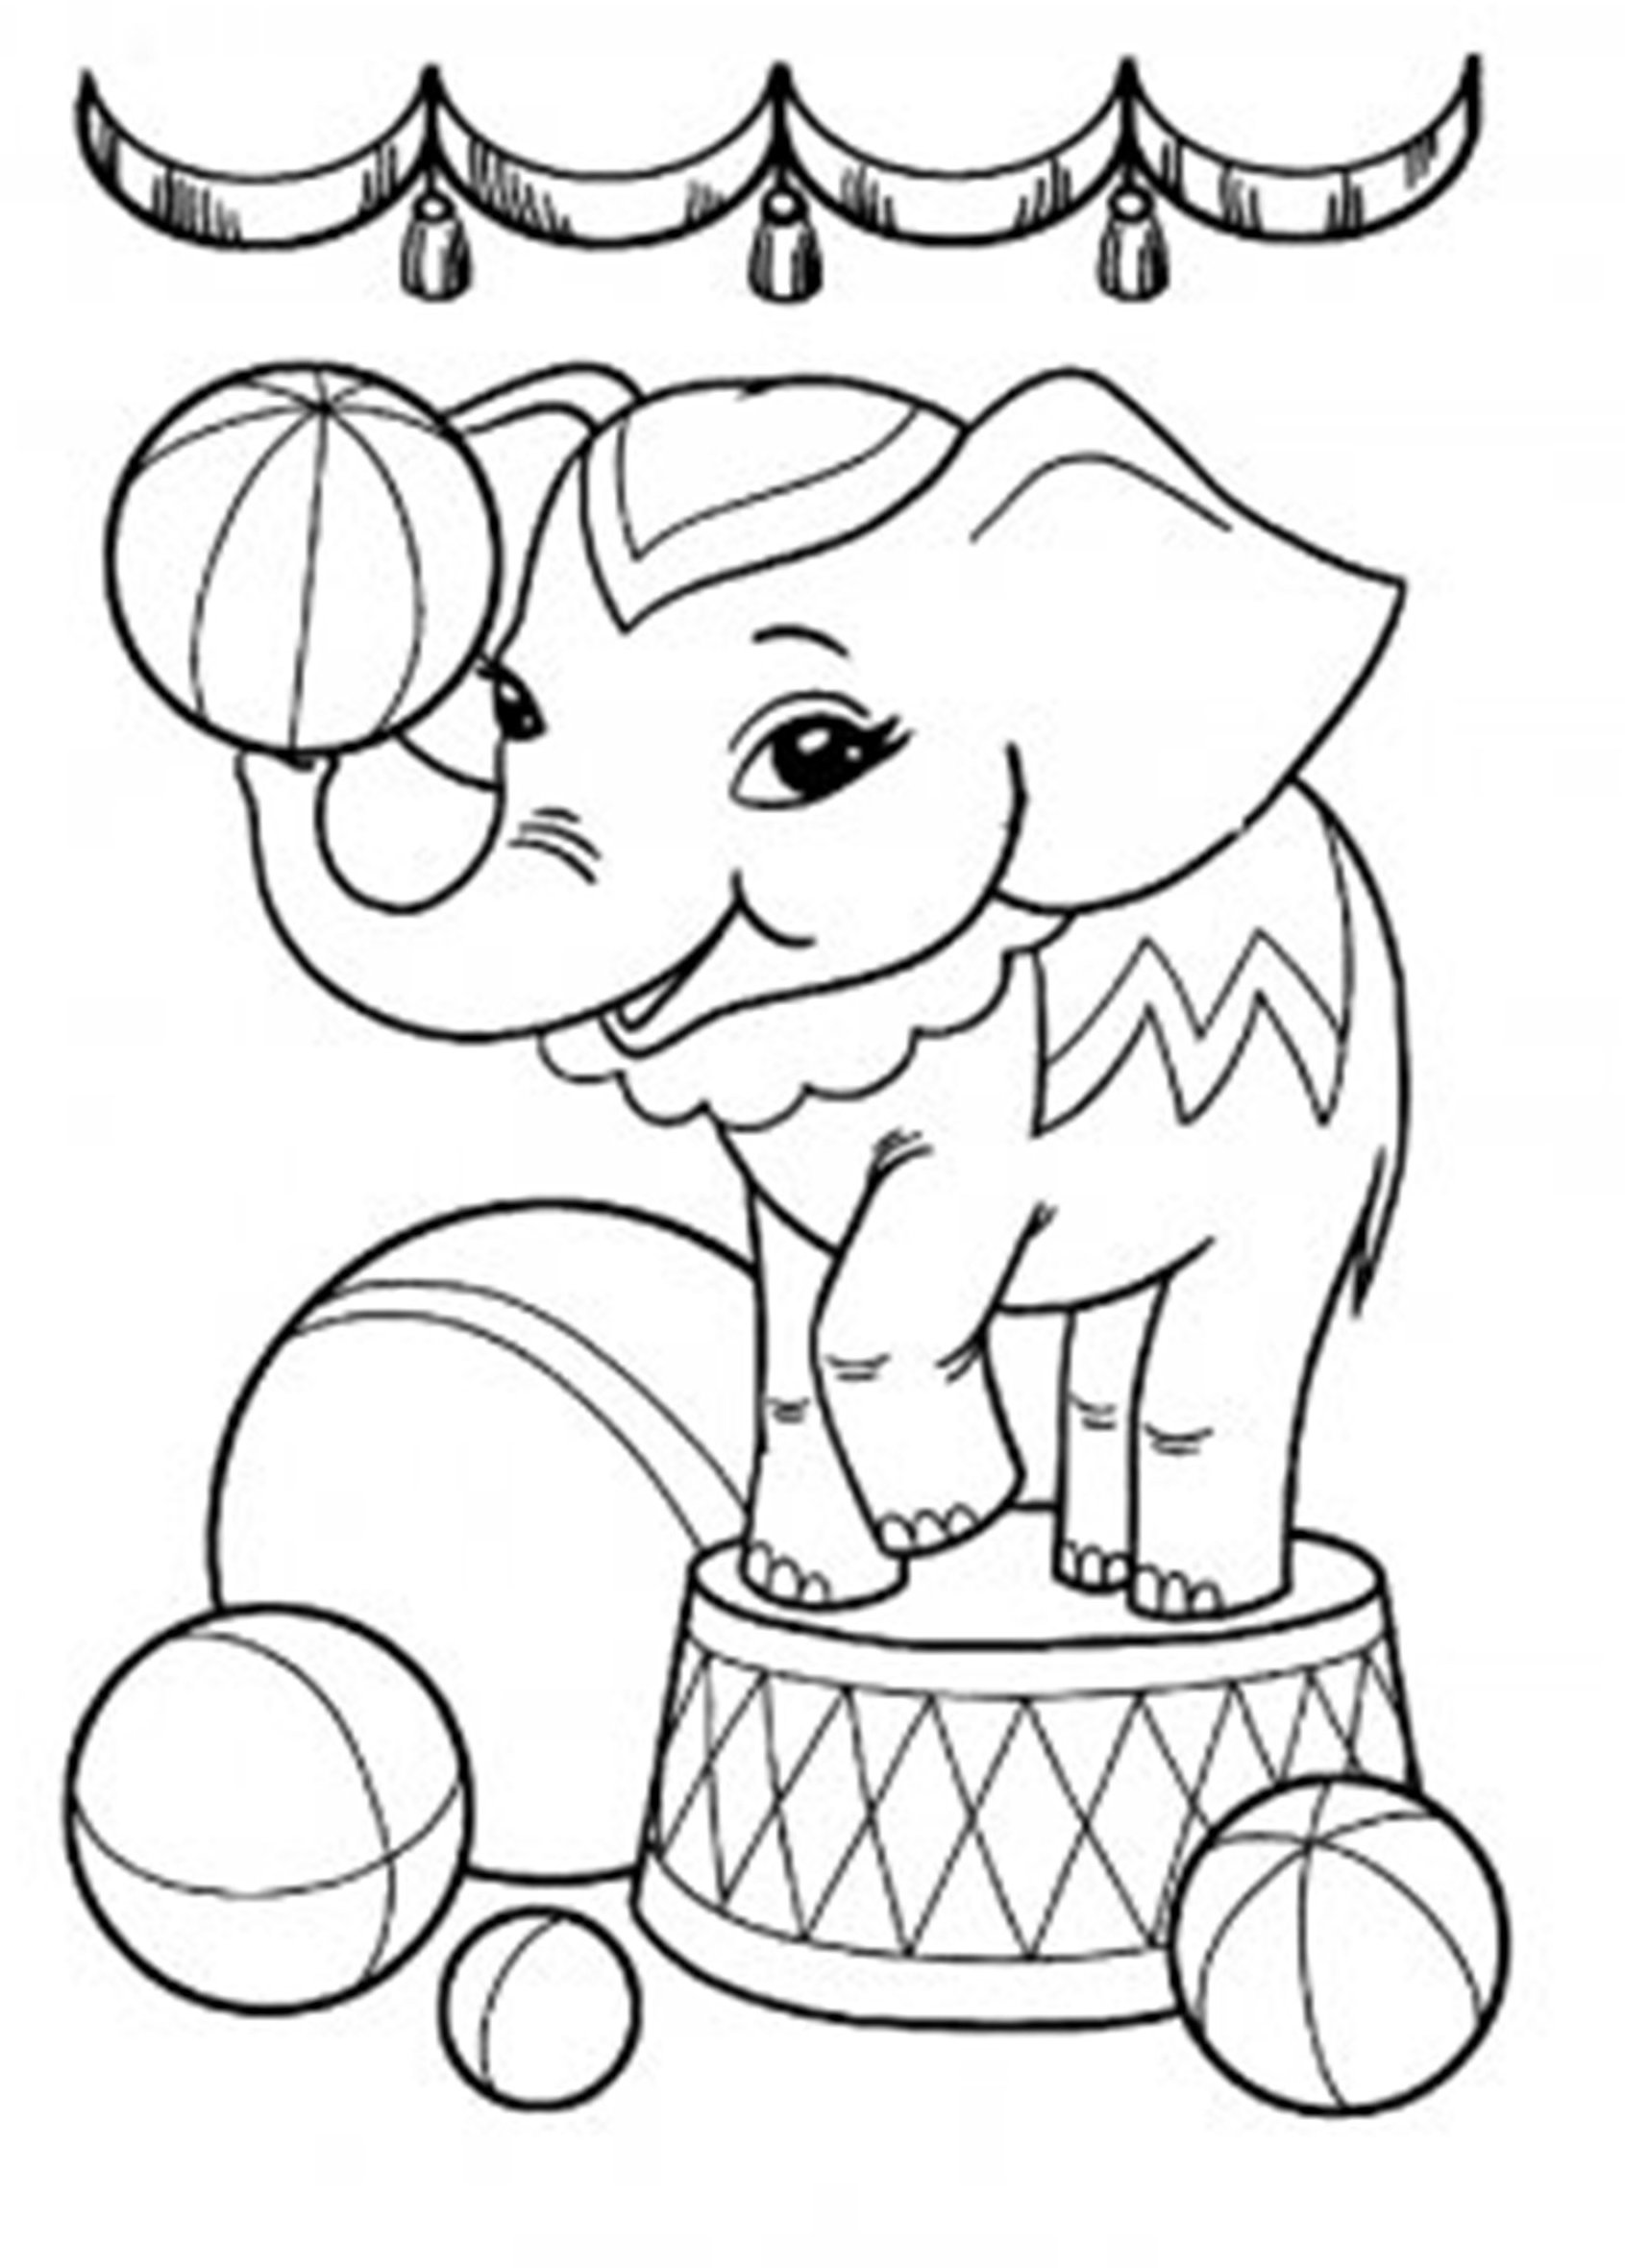 elephants coloring pages print download teaching kids through elephant coloring pages elephants coloring